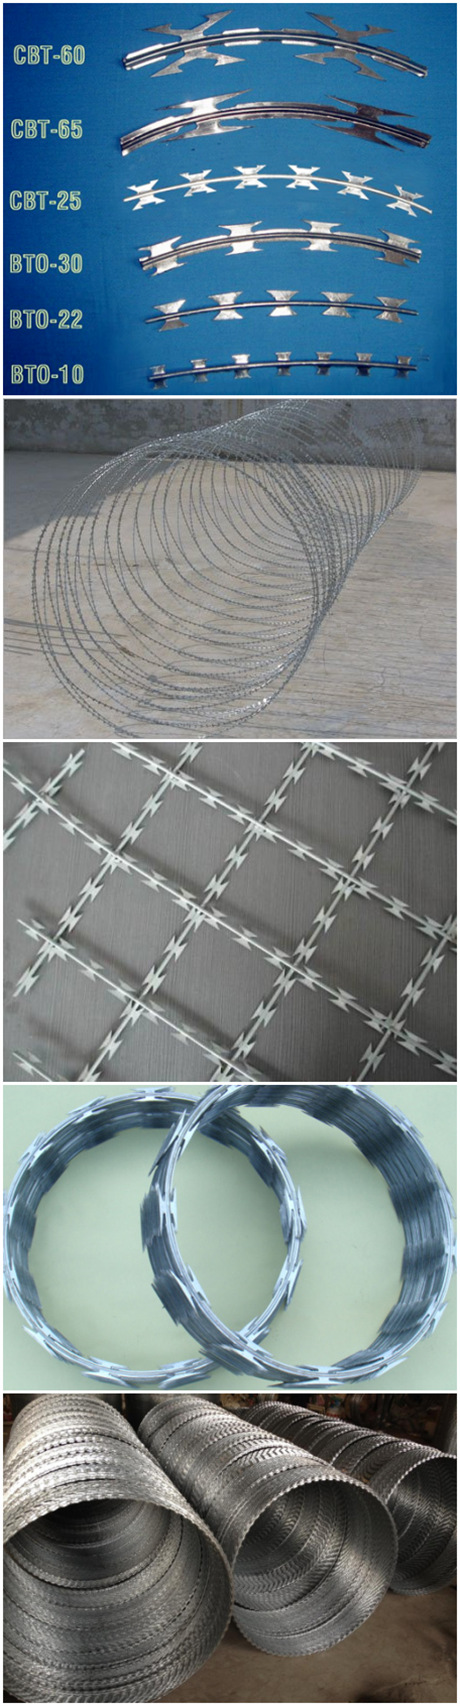 China 8 Years Expert Razor Wire Suppliers